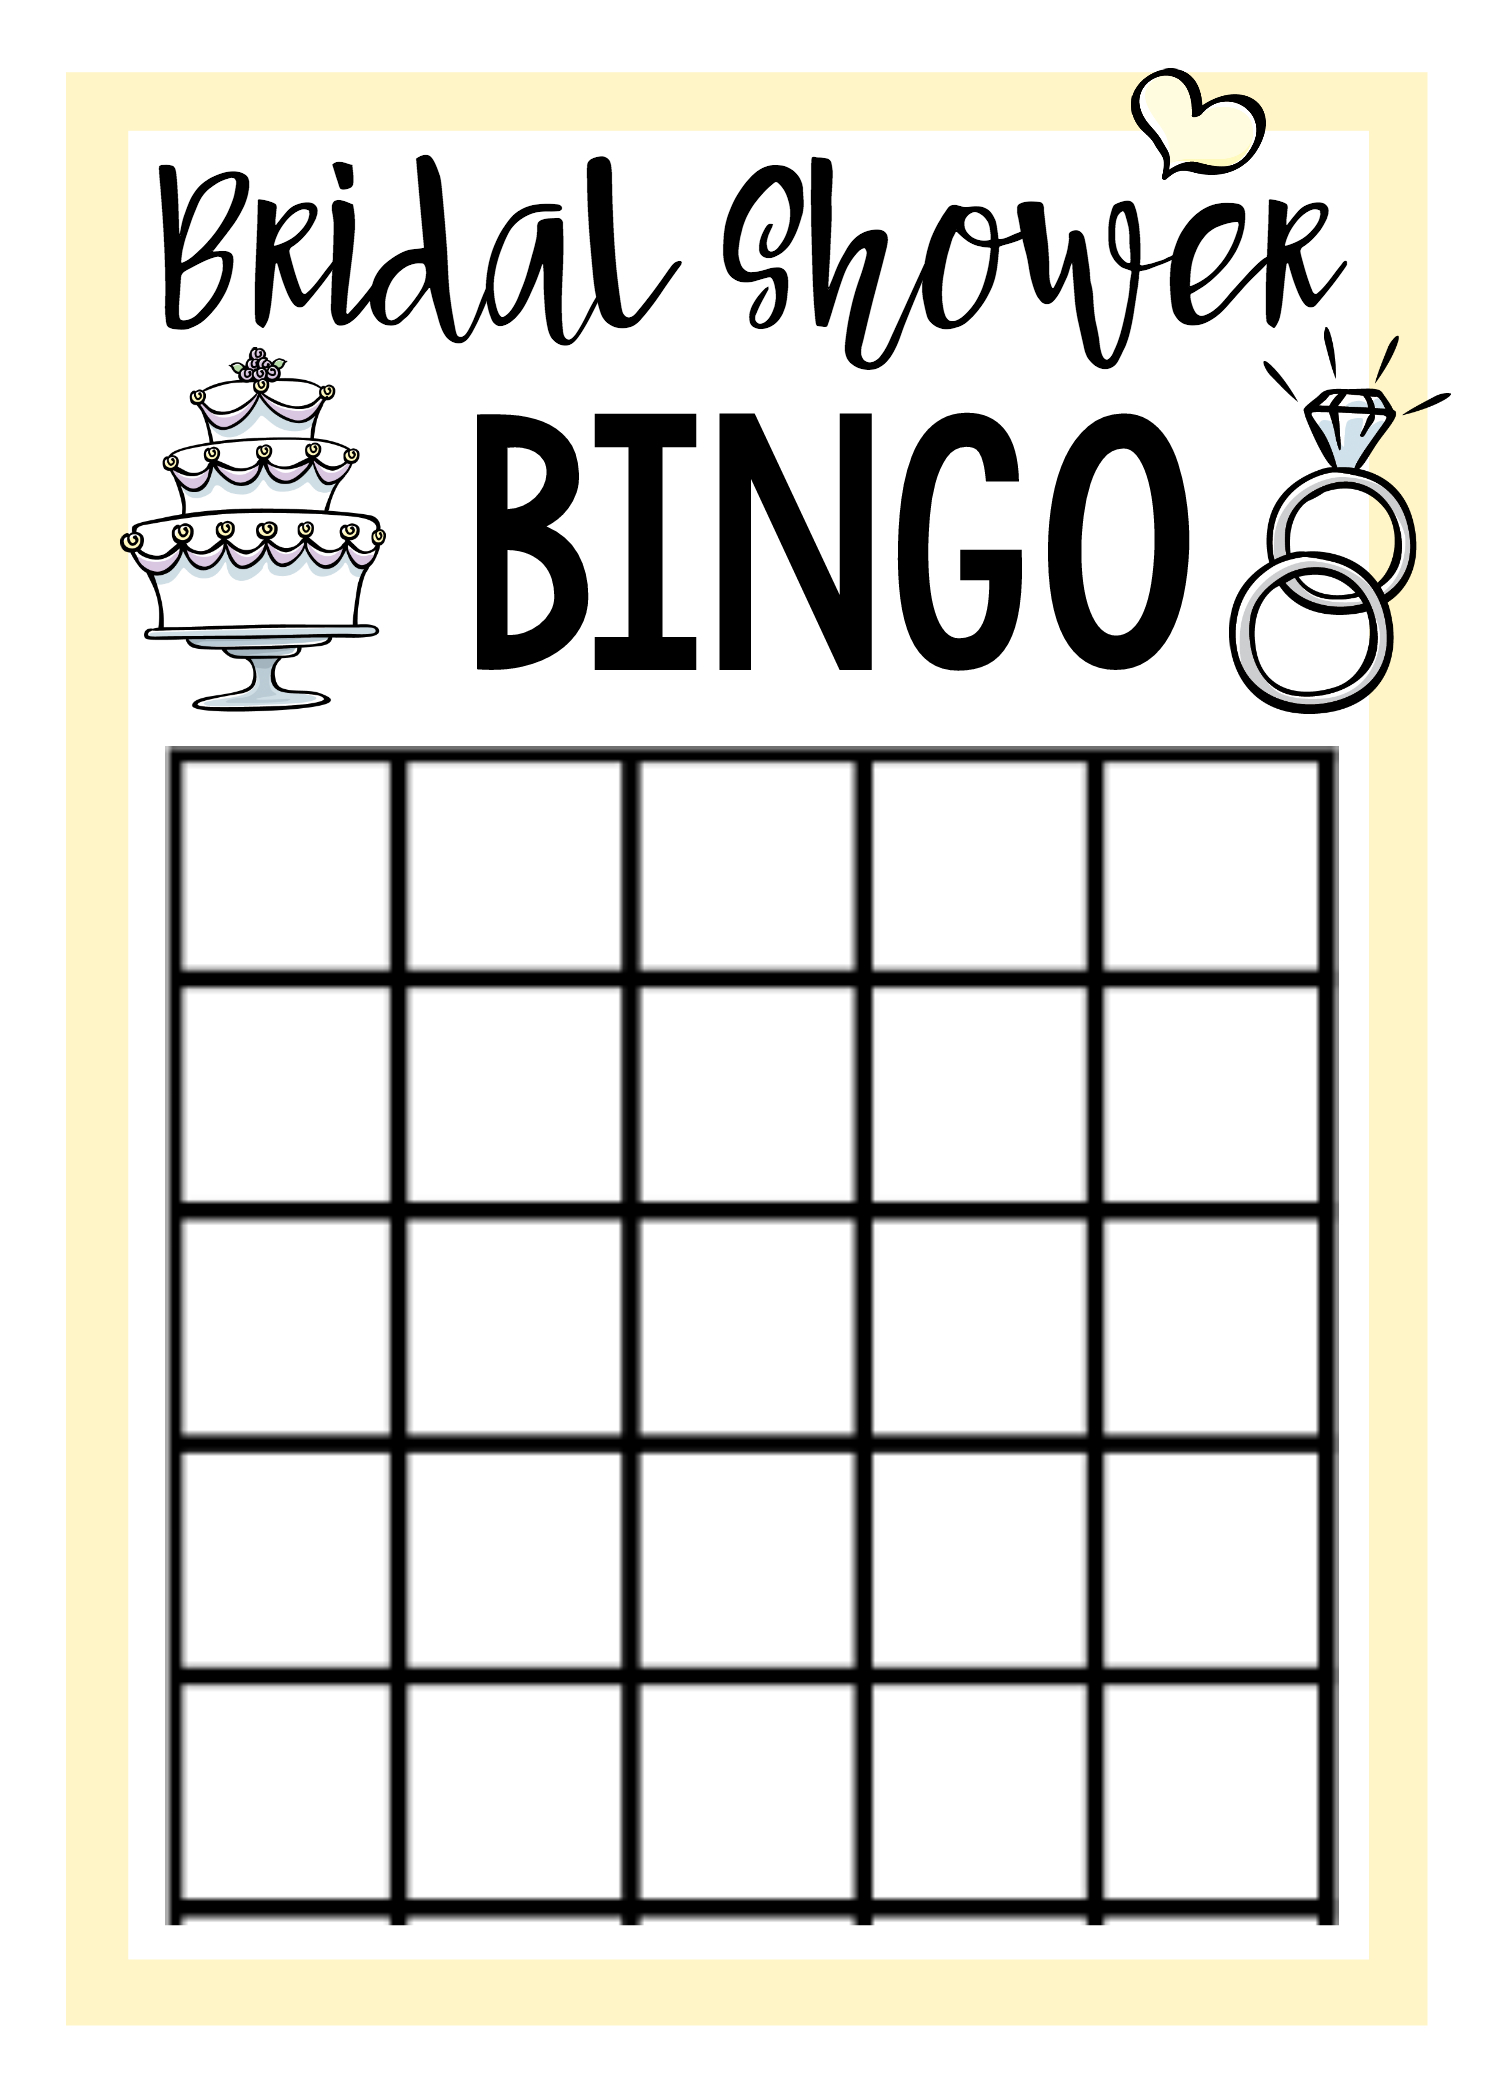 Free Printable Bridal Shower Games | Bridal Shower Bingo